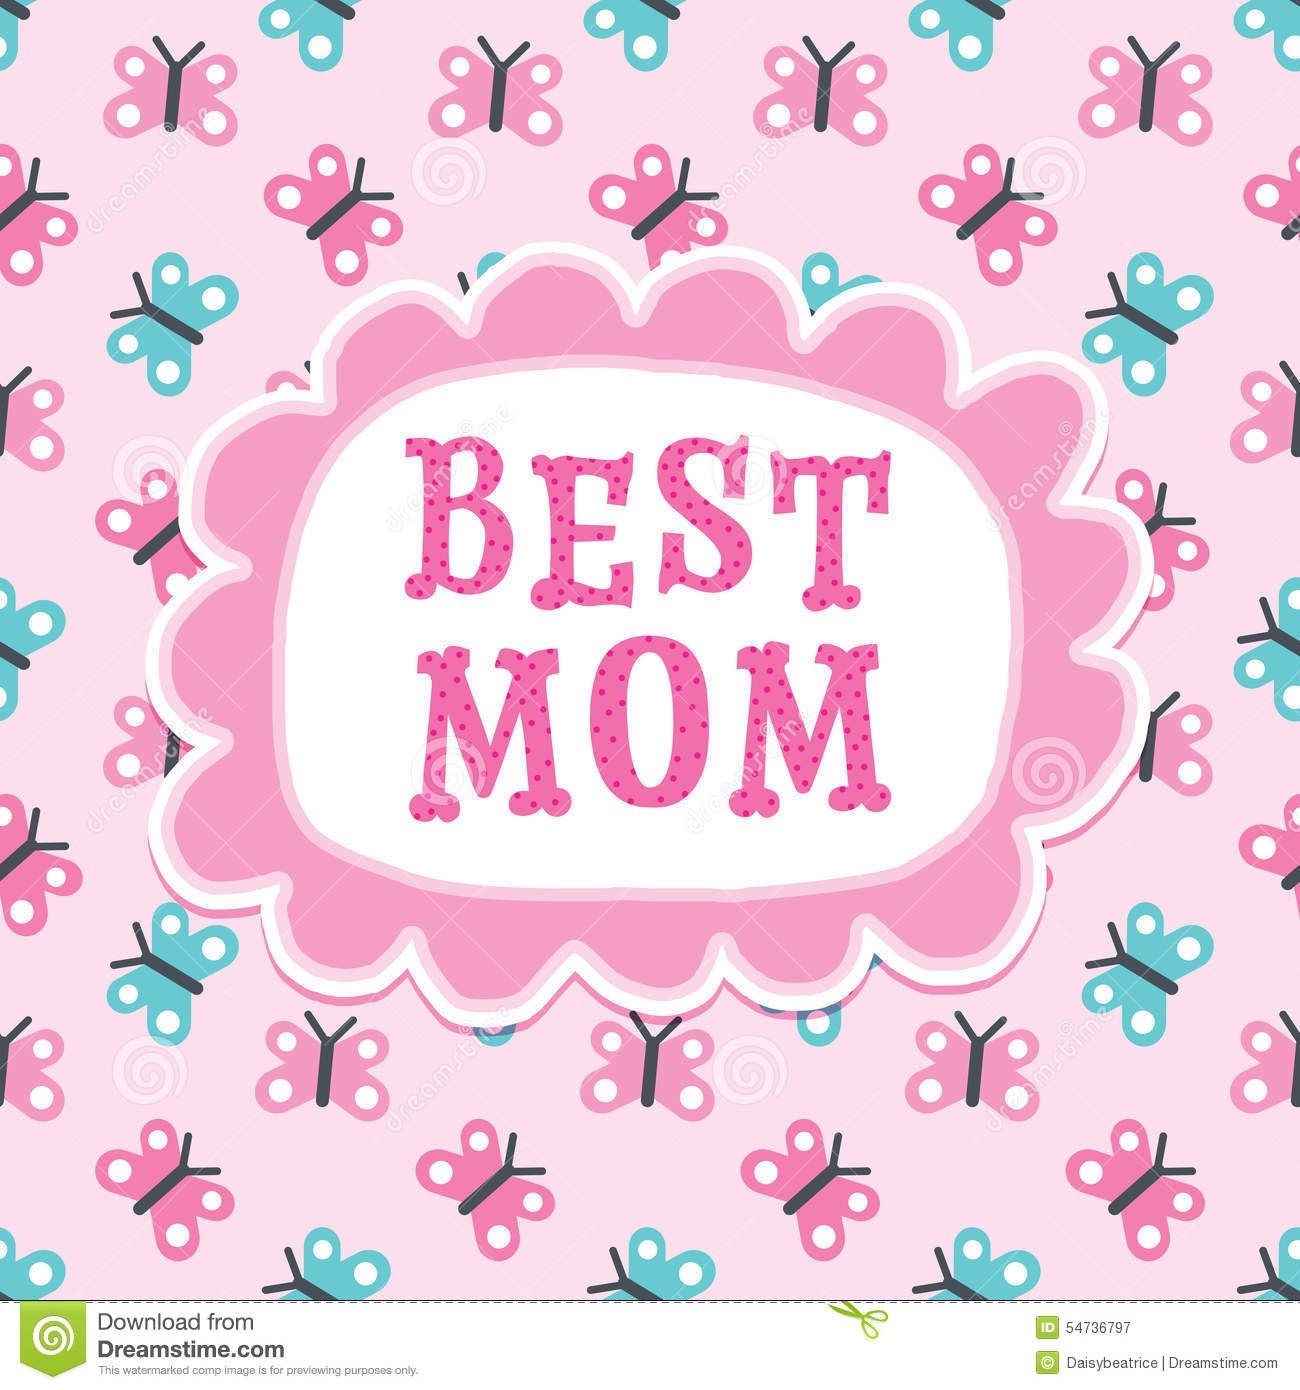 Mothers Day Or Birthday Card Best Mom Butterflies Stock Vector - Image ...